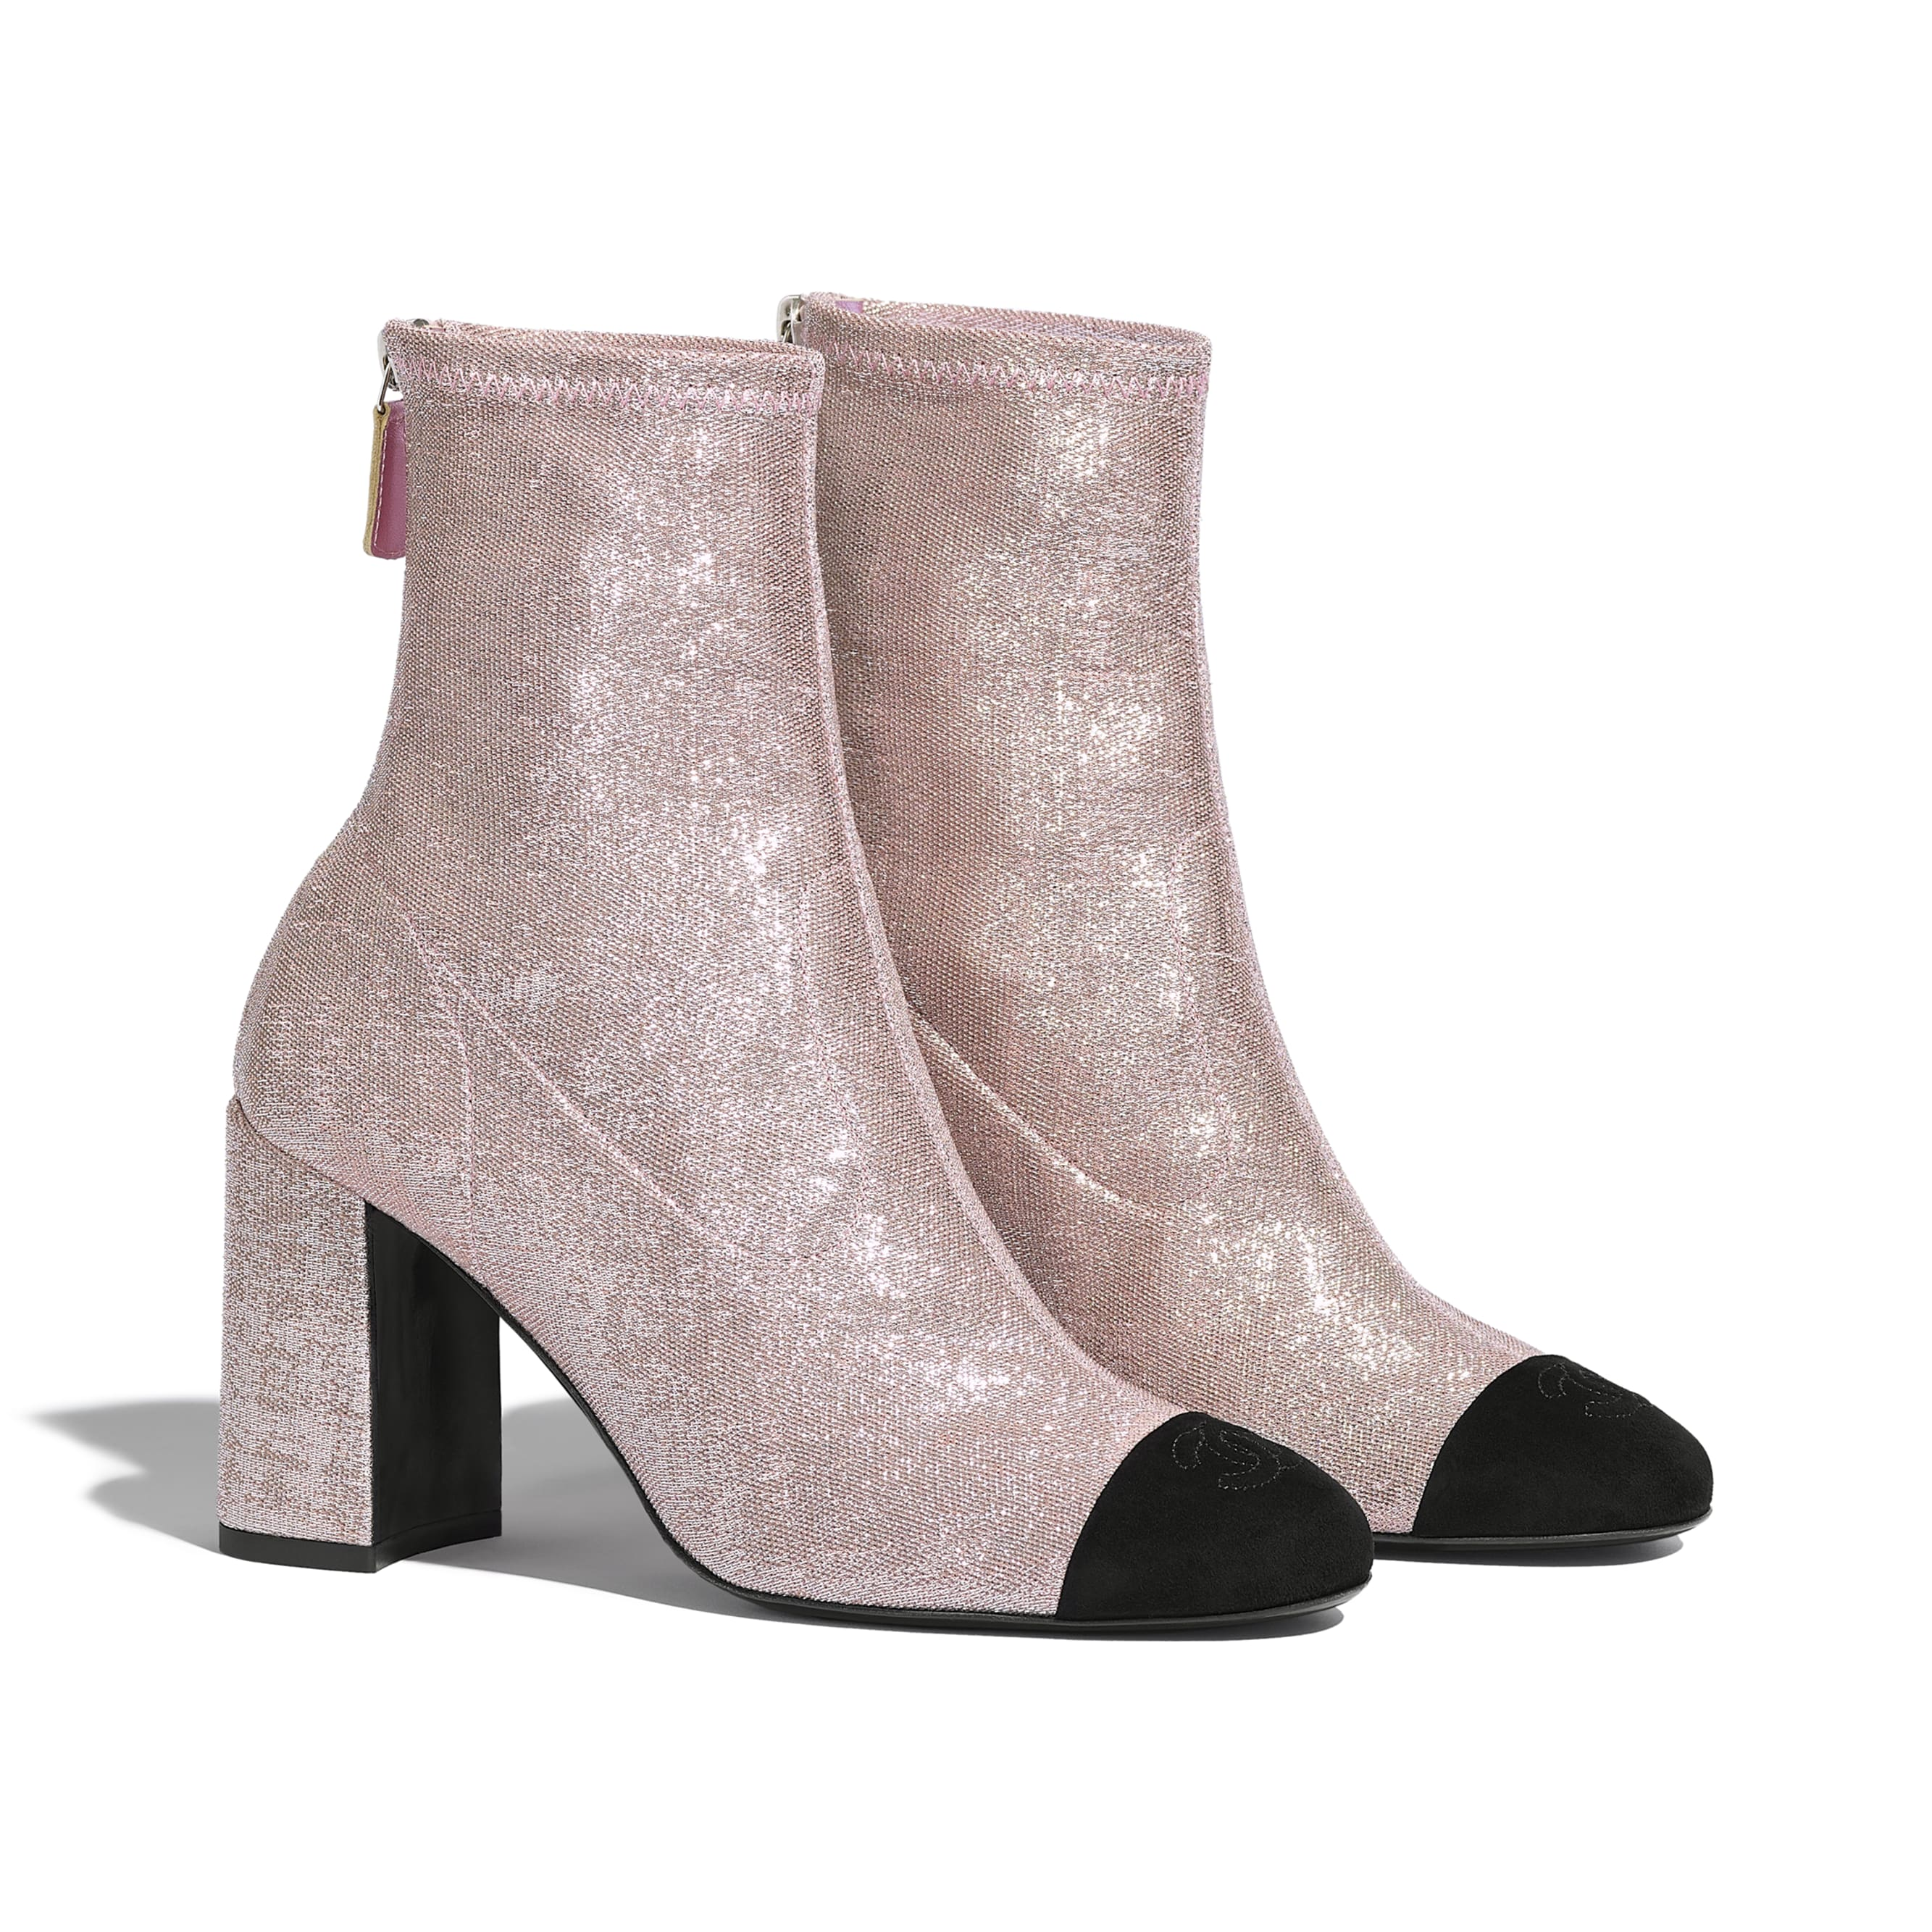 Ankle Boots - Pink & Black - Fabric & Suede Kidskin - CHANEL - Alternative view - see standard sized version